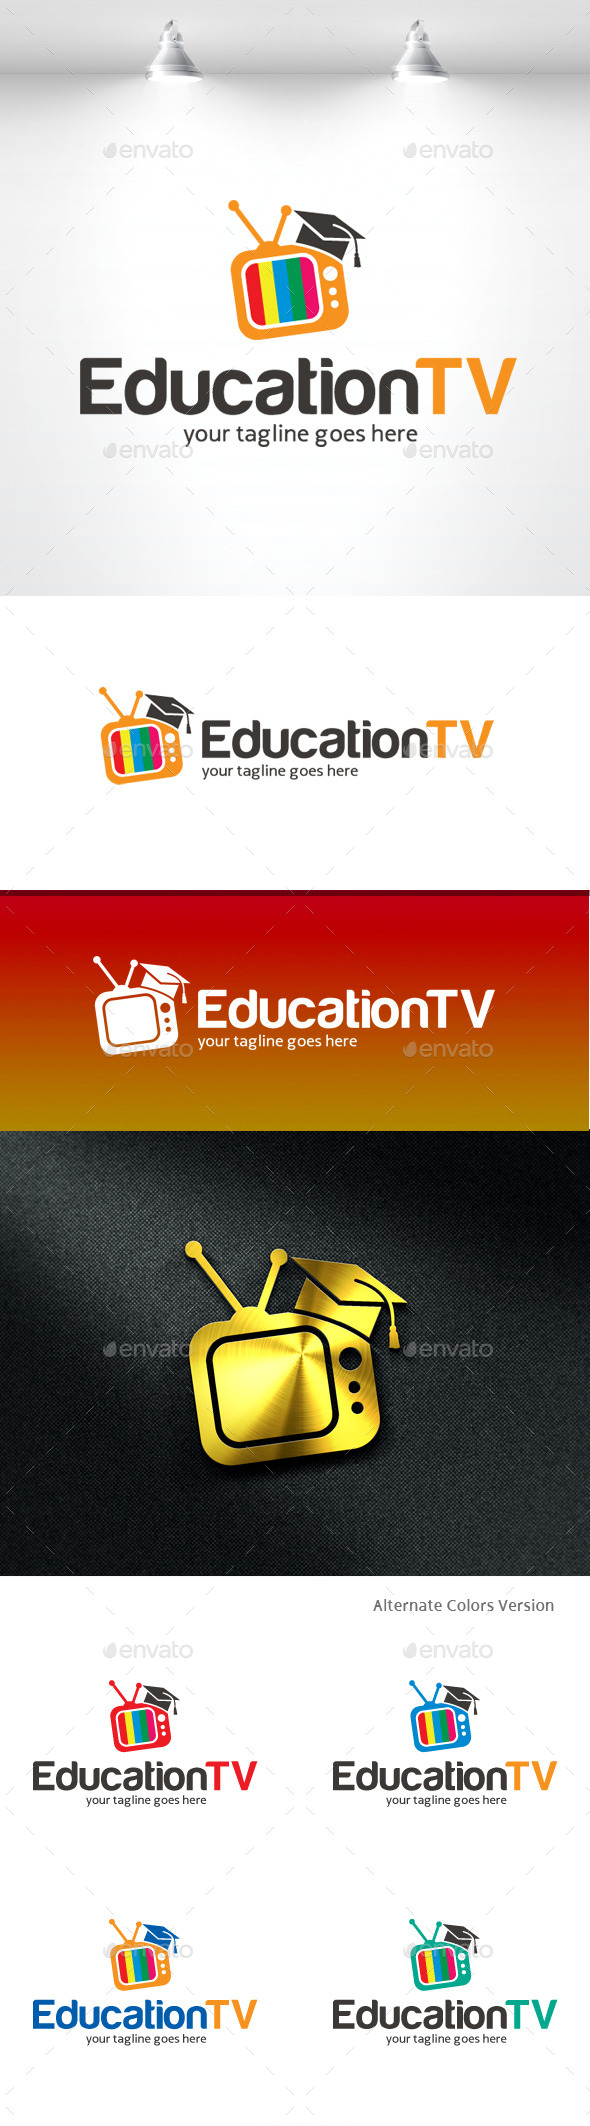 GraphicRiver Education TV Logo 11369611